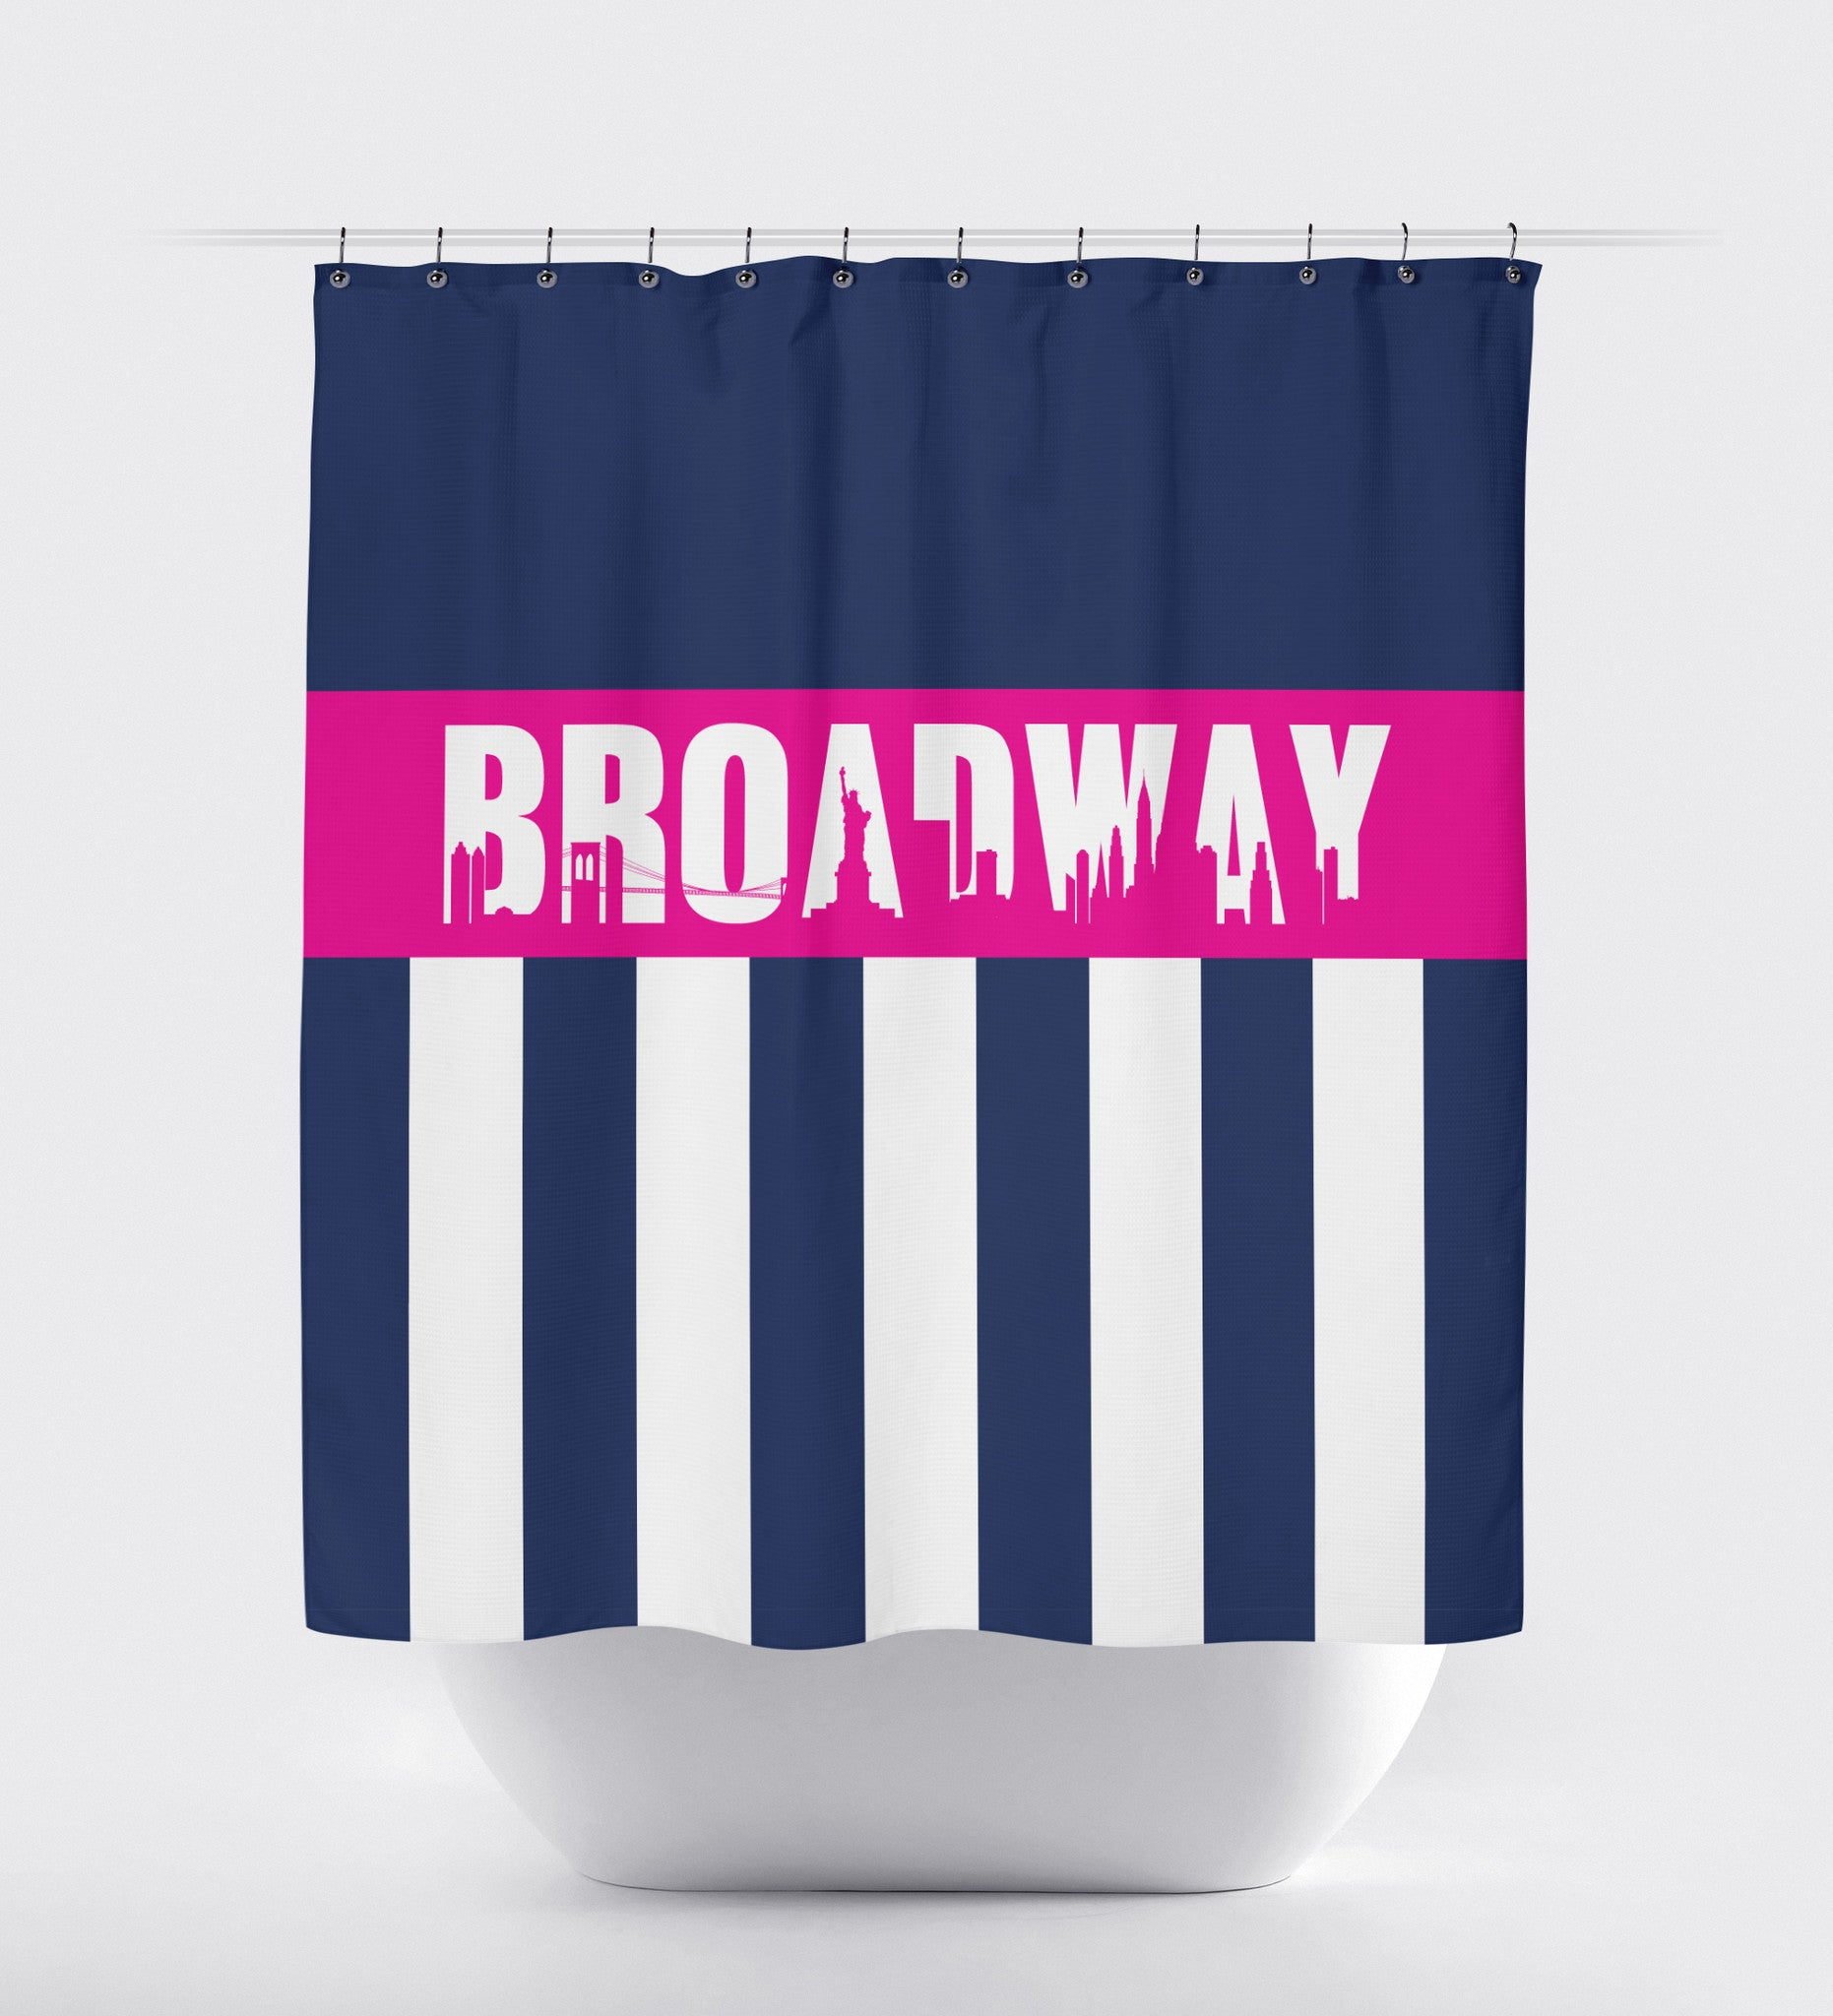 Broadway Shower Curtain With Vertical Stripes And New York City Skyline Navy Blue Hot Pink And White Choose Any Colors